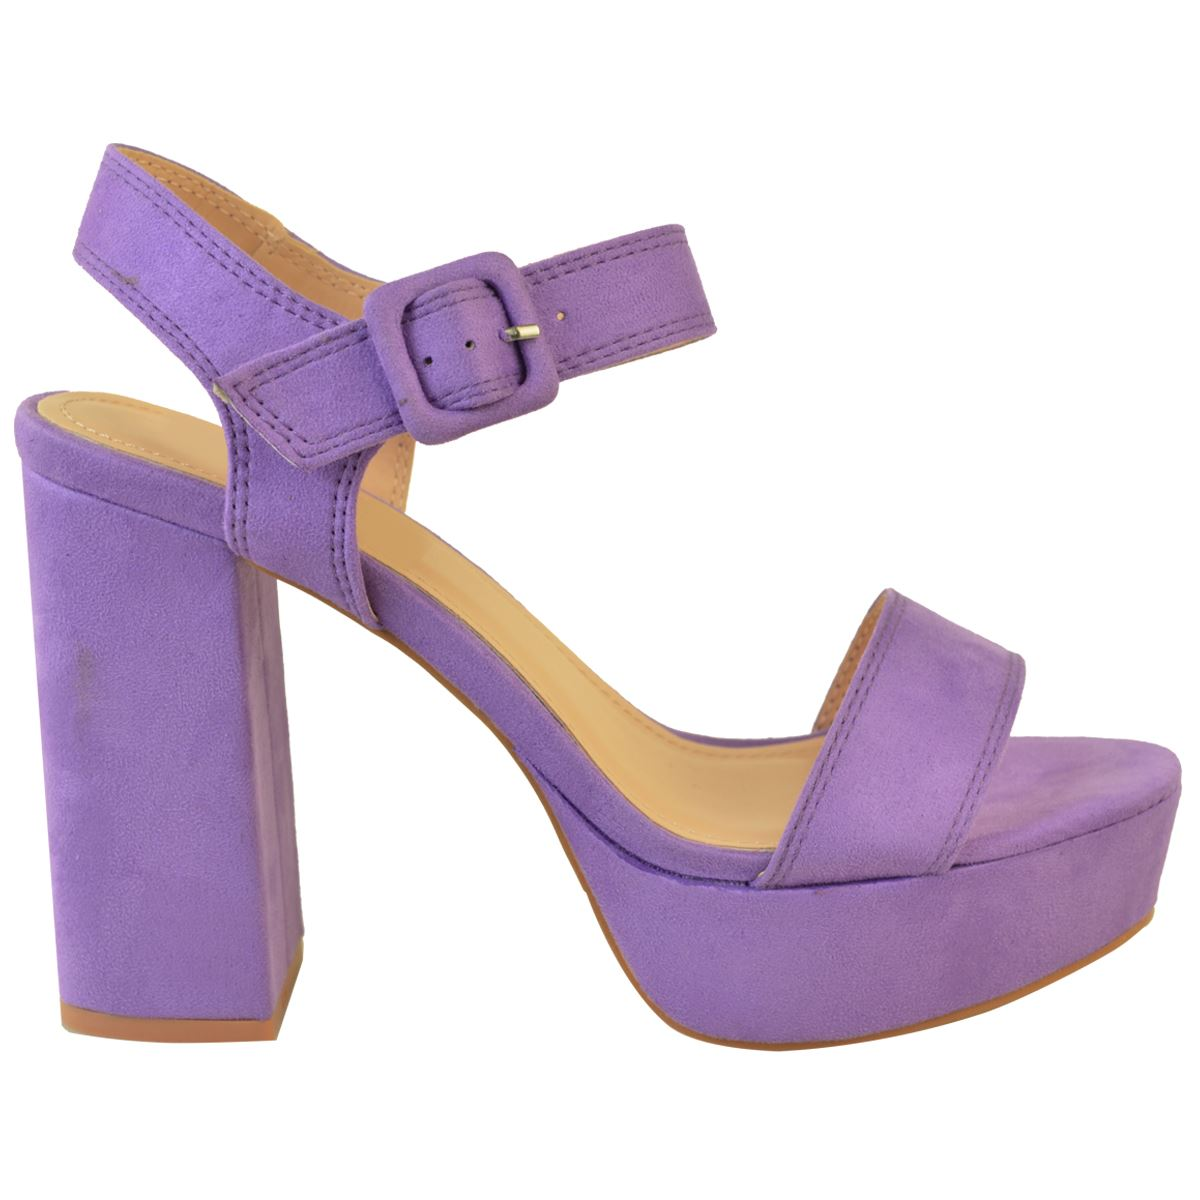 New-Womens-Summer-Platform-High-Heel-Sandals-Ladies-Open-Toe-Strappy-Party-Shoes thumbnail 29